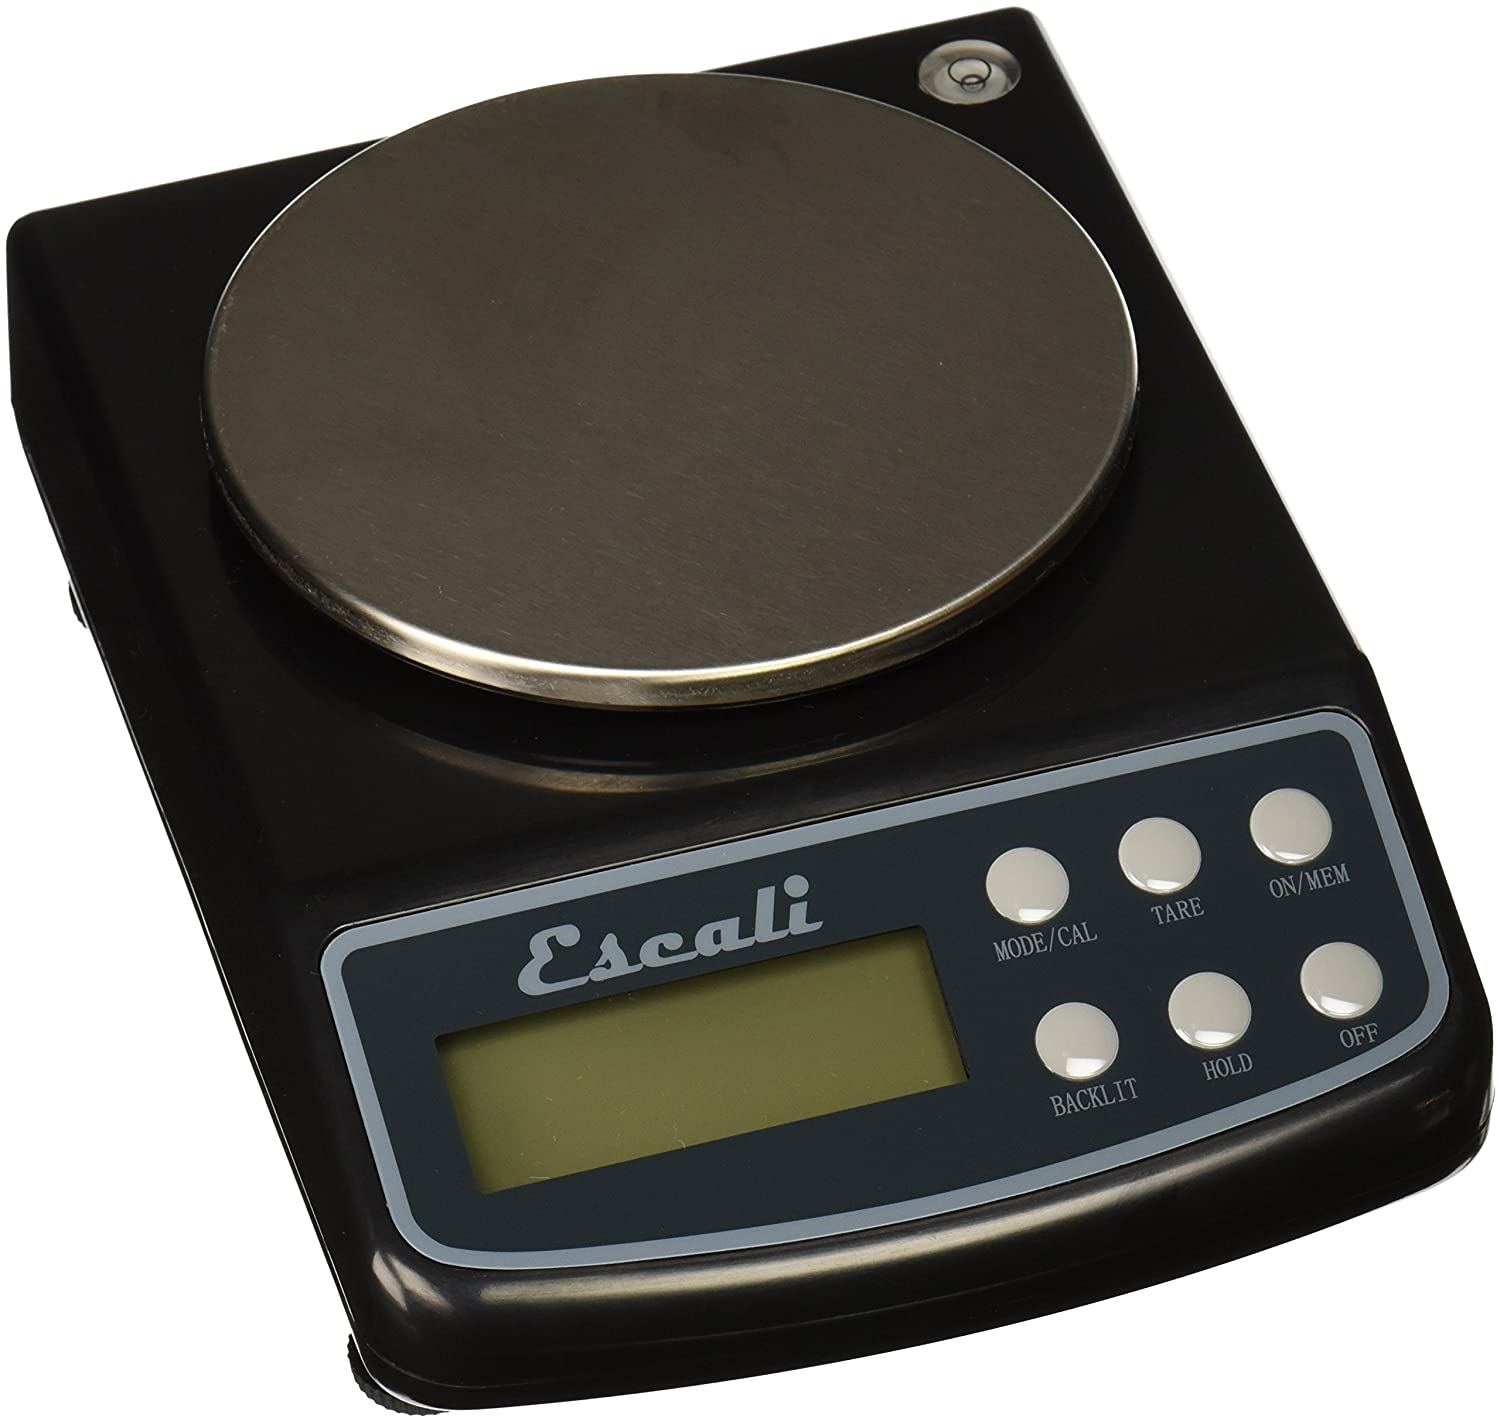 Escali l series digital scales best digital scales for Professional food scale